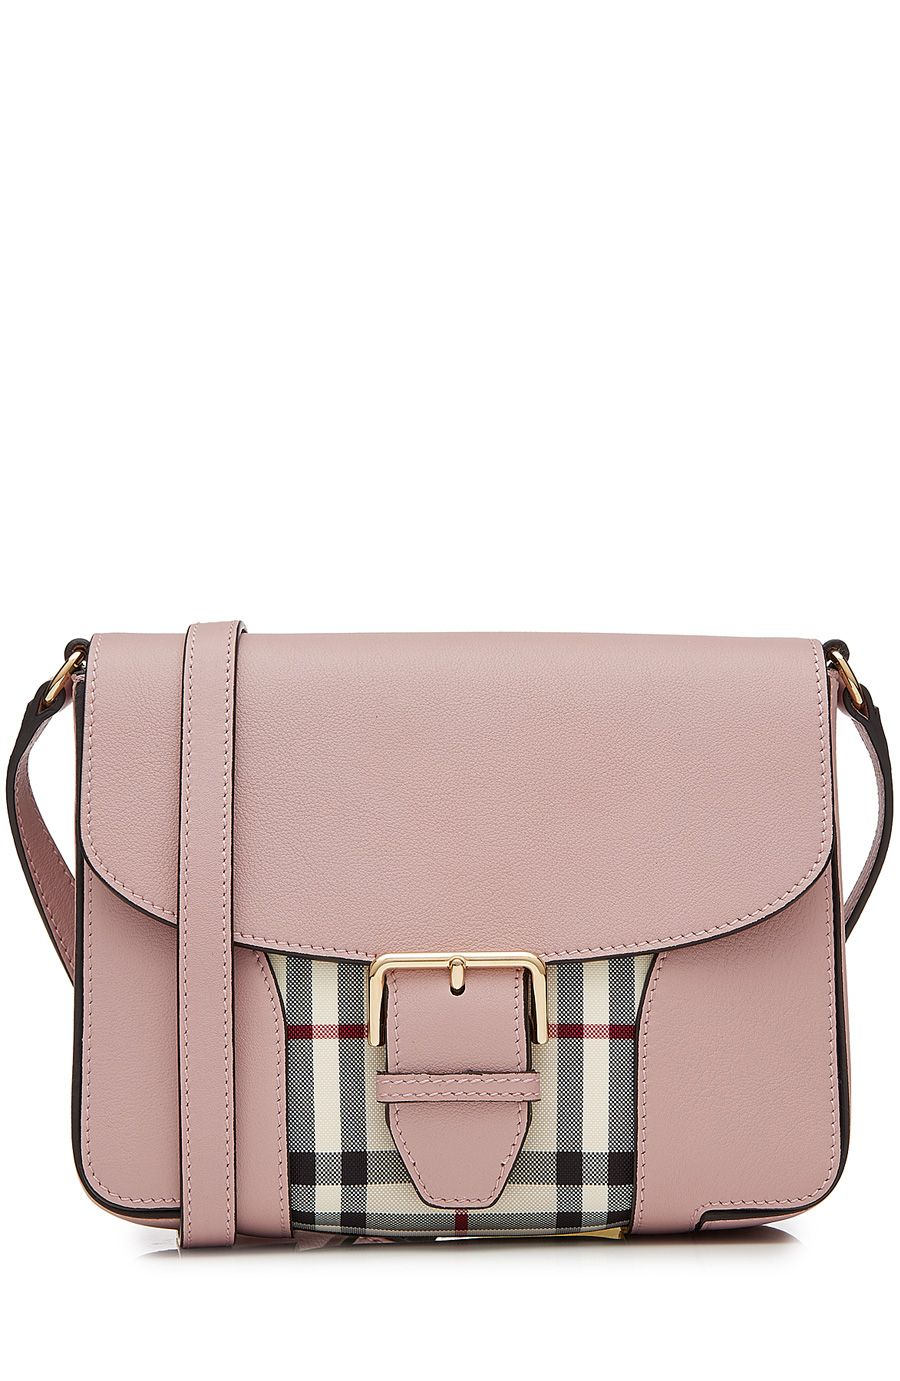 BURBERRY Leather Shoulder Bag With Check Print.  burberry  bags  leather   lining  denim  shoulder bags  cashmere  knit   cdfc6b56a